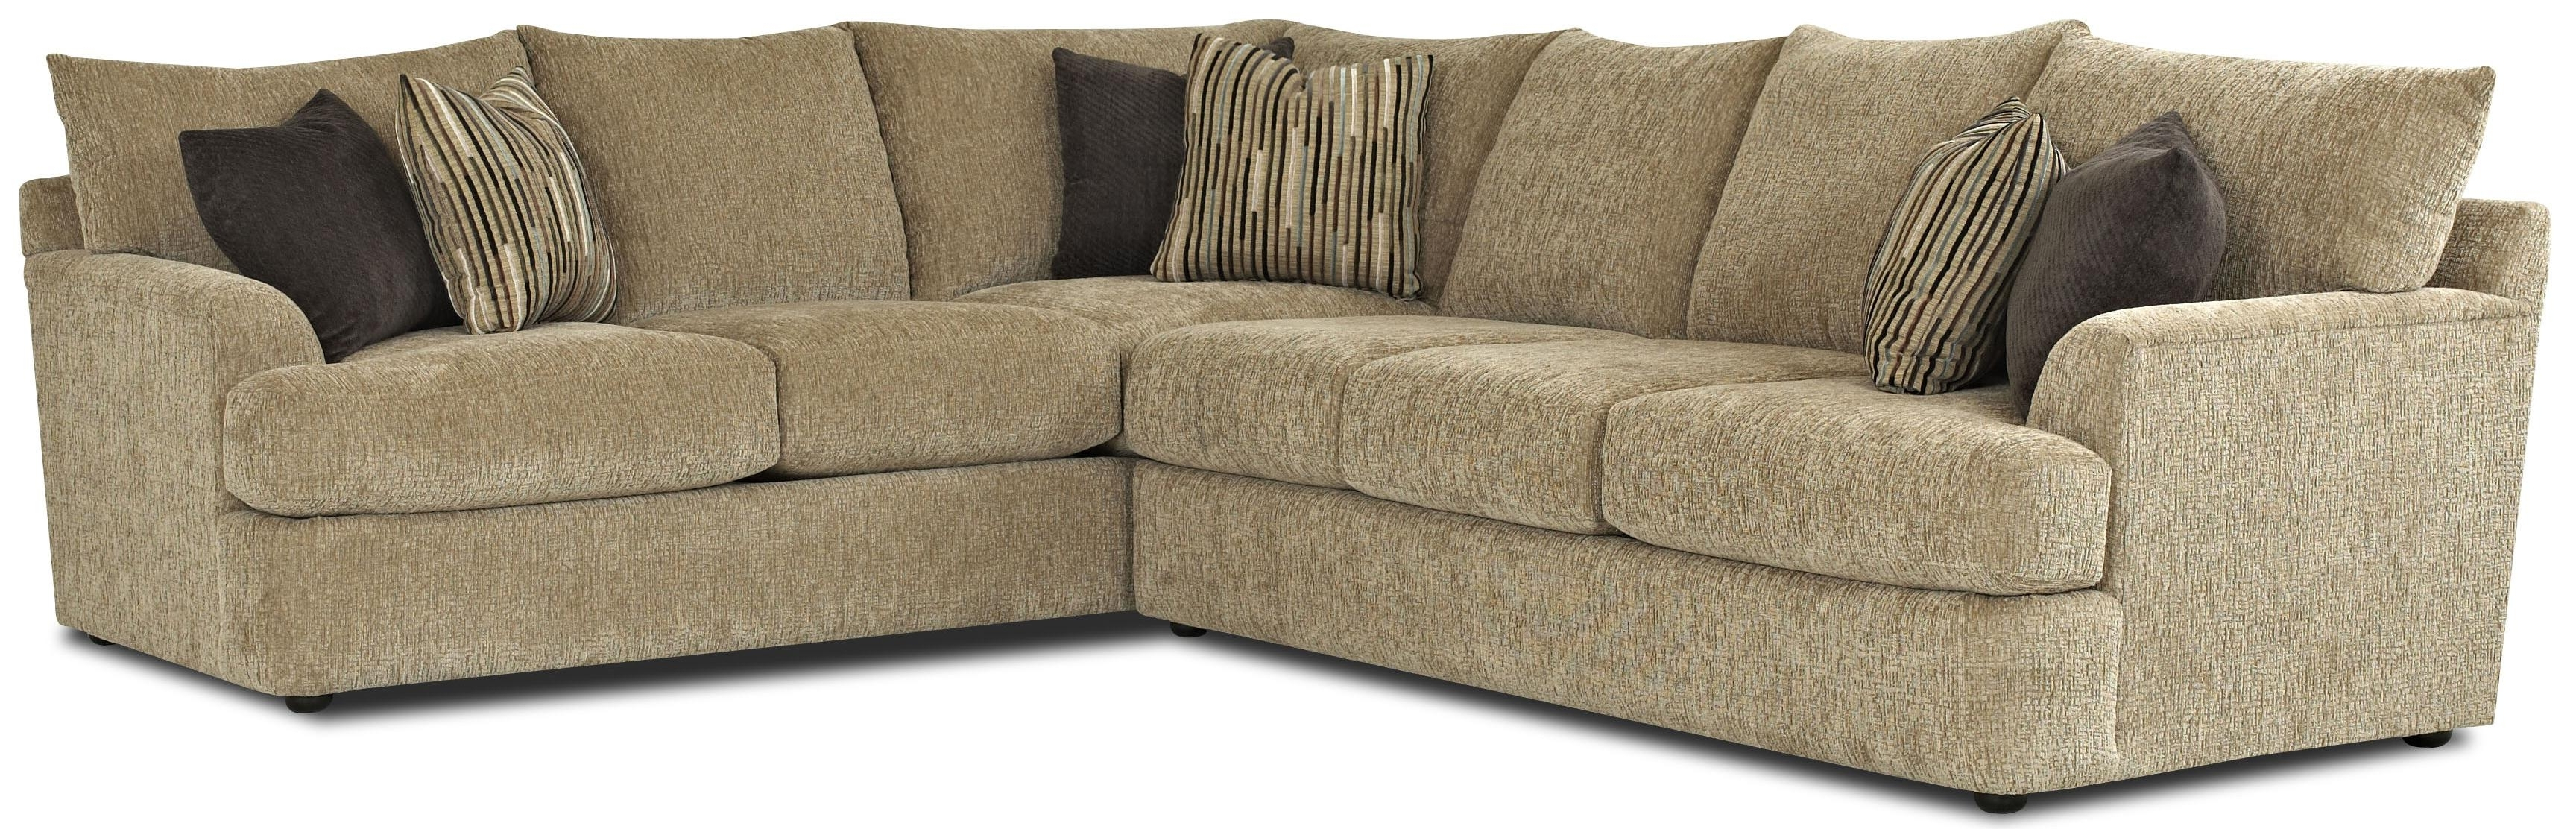 Contemporary L Shaped Sectional Sofaklaussner (View 8 of 15)